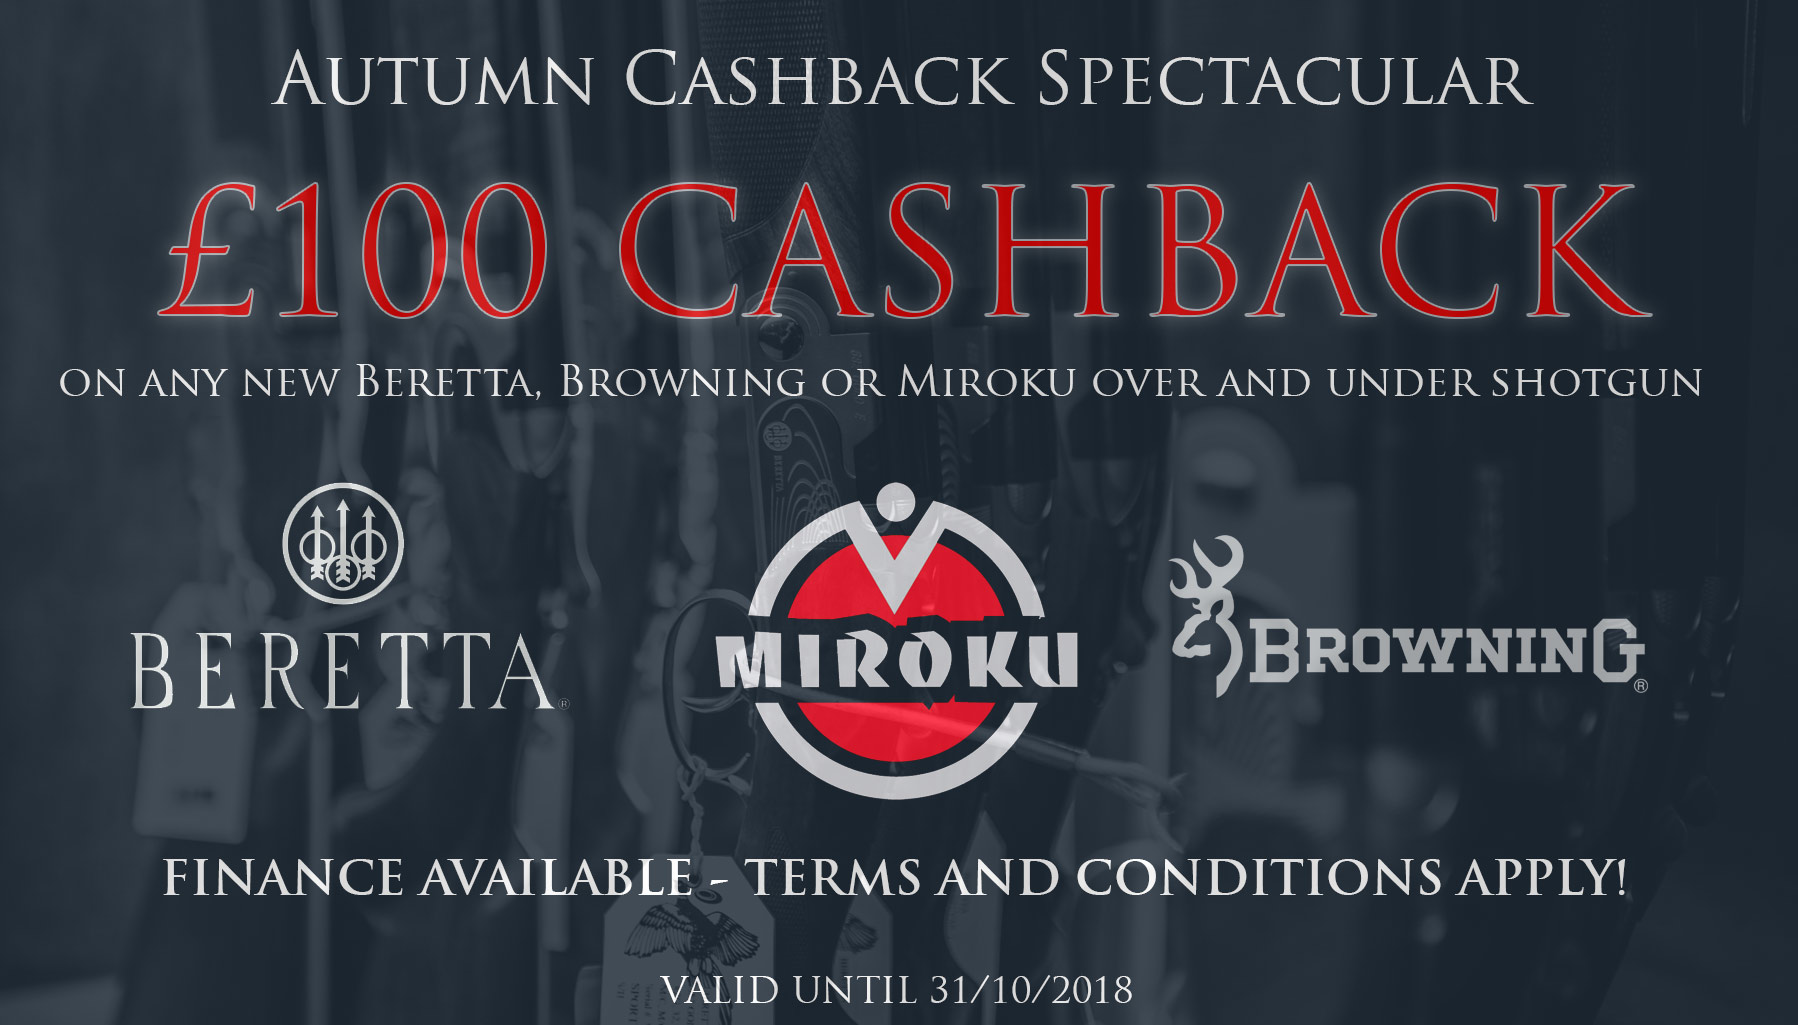 Autumn Cashback Deal